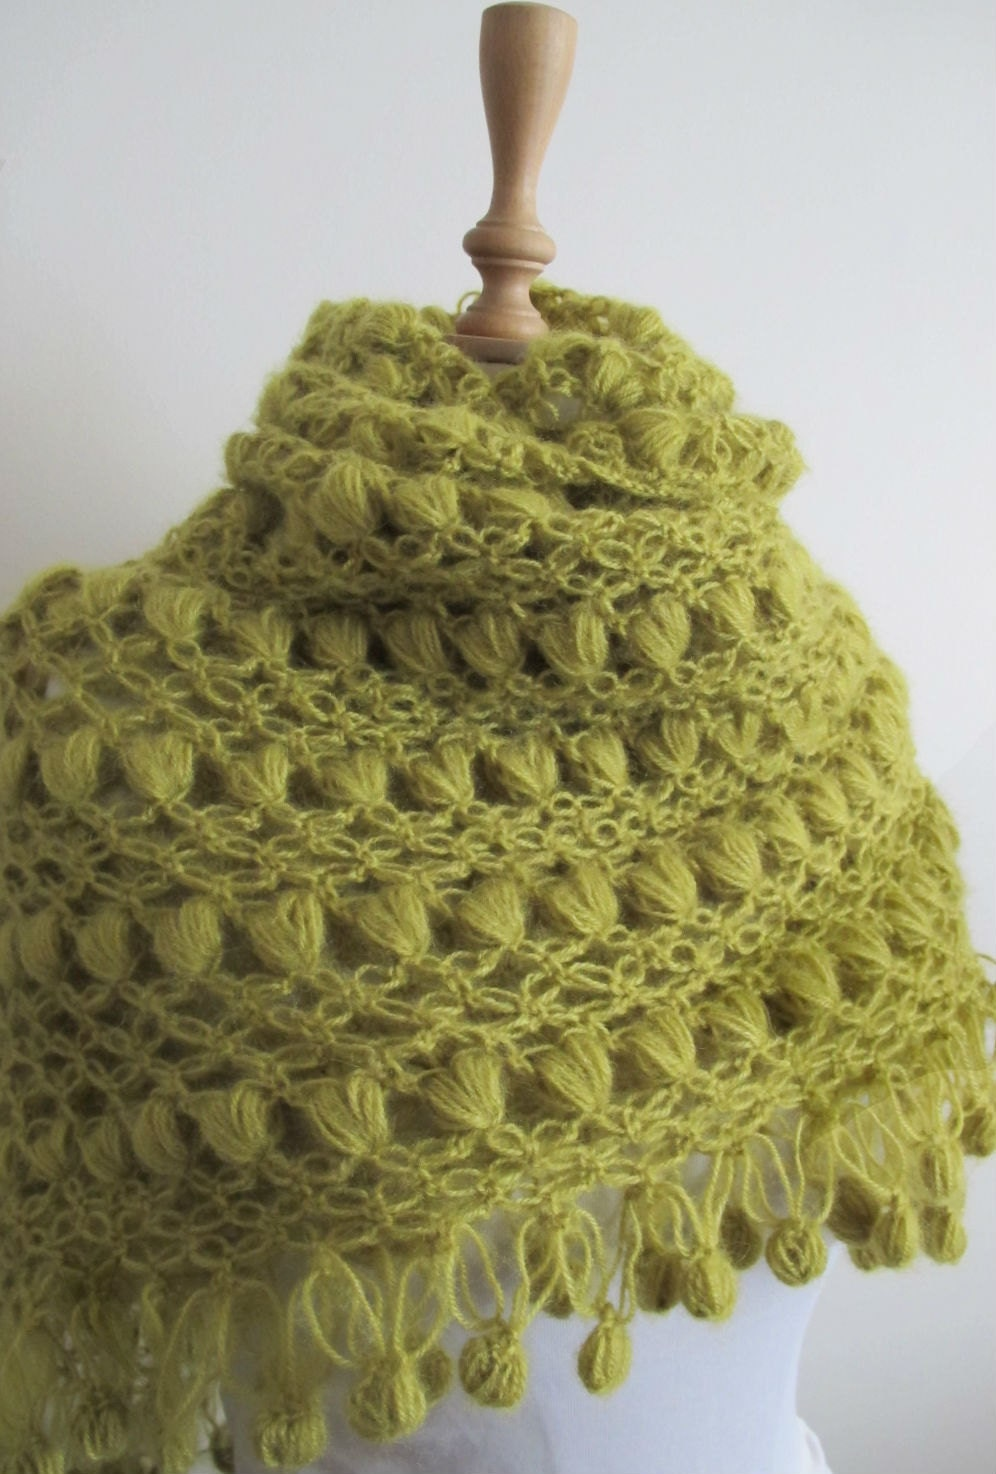 Free Crochet And Knit Patterns : CROCHET HAT AND SCARF PATTERN Crochet For Beginners